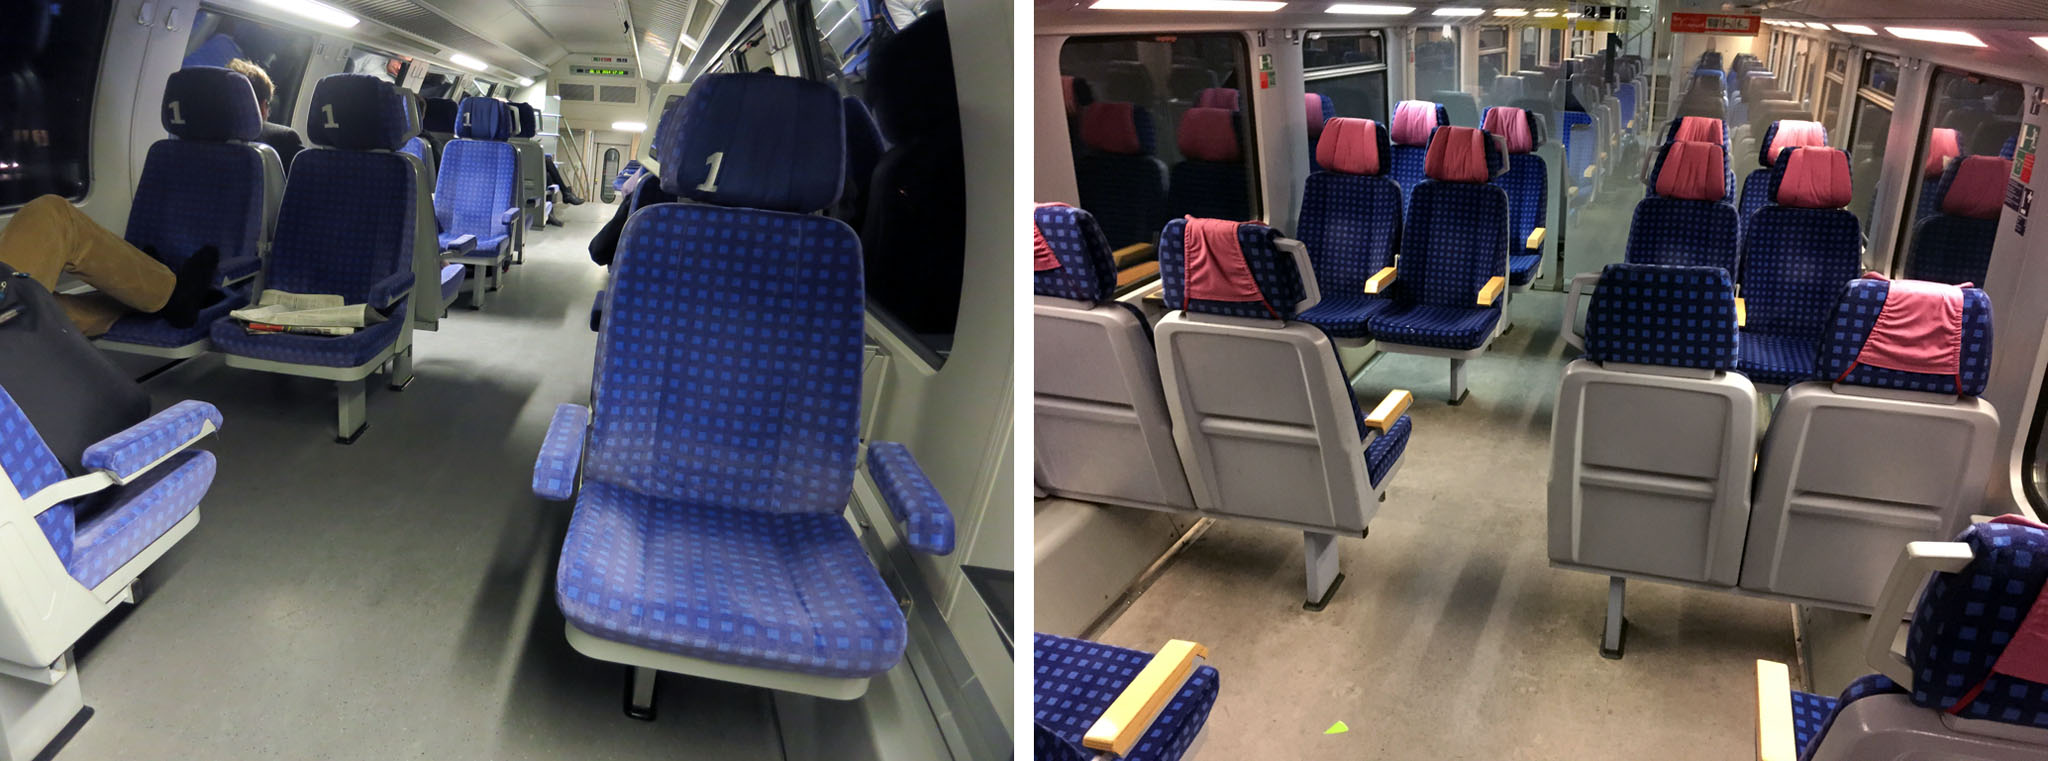 From the province to the big city  Travelling with Deutsche Bahn